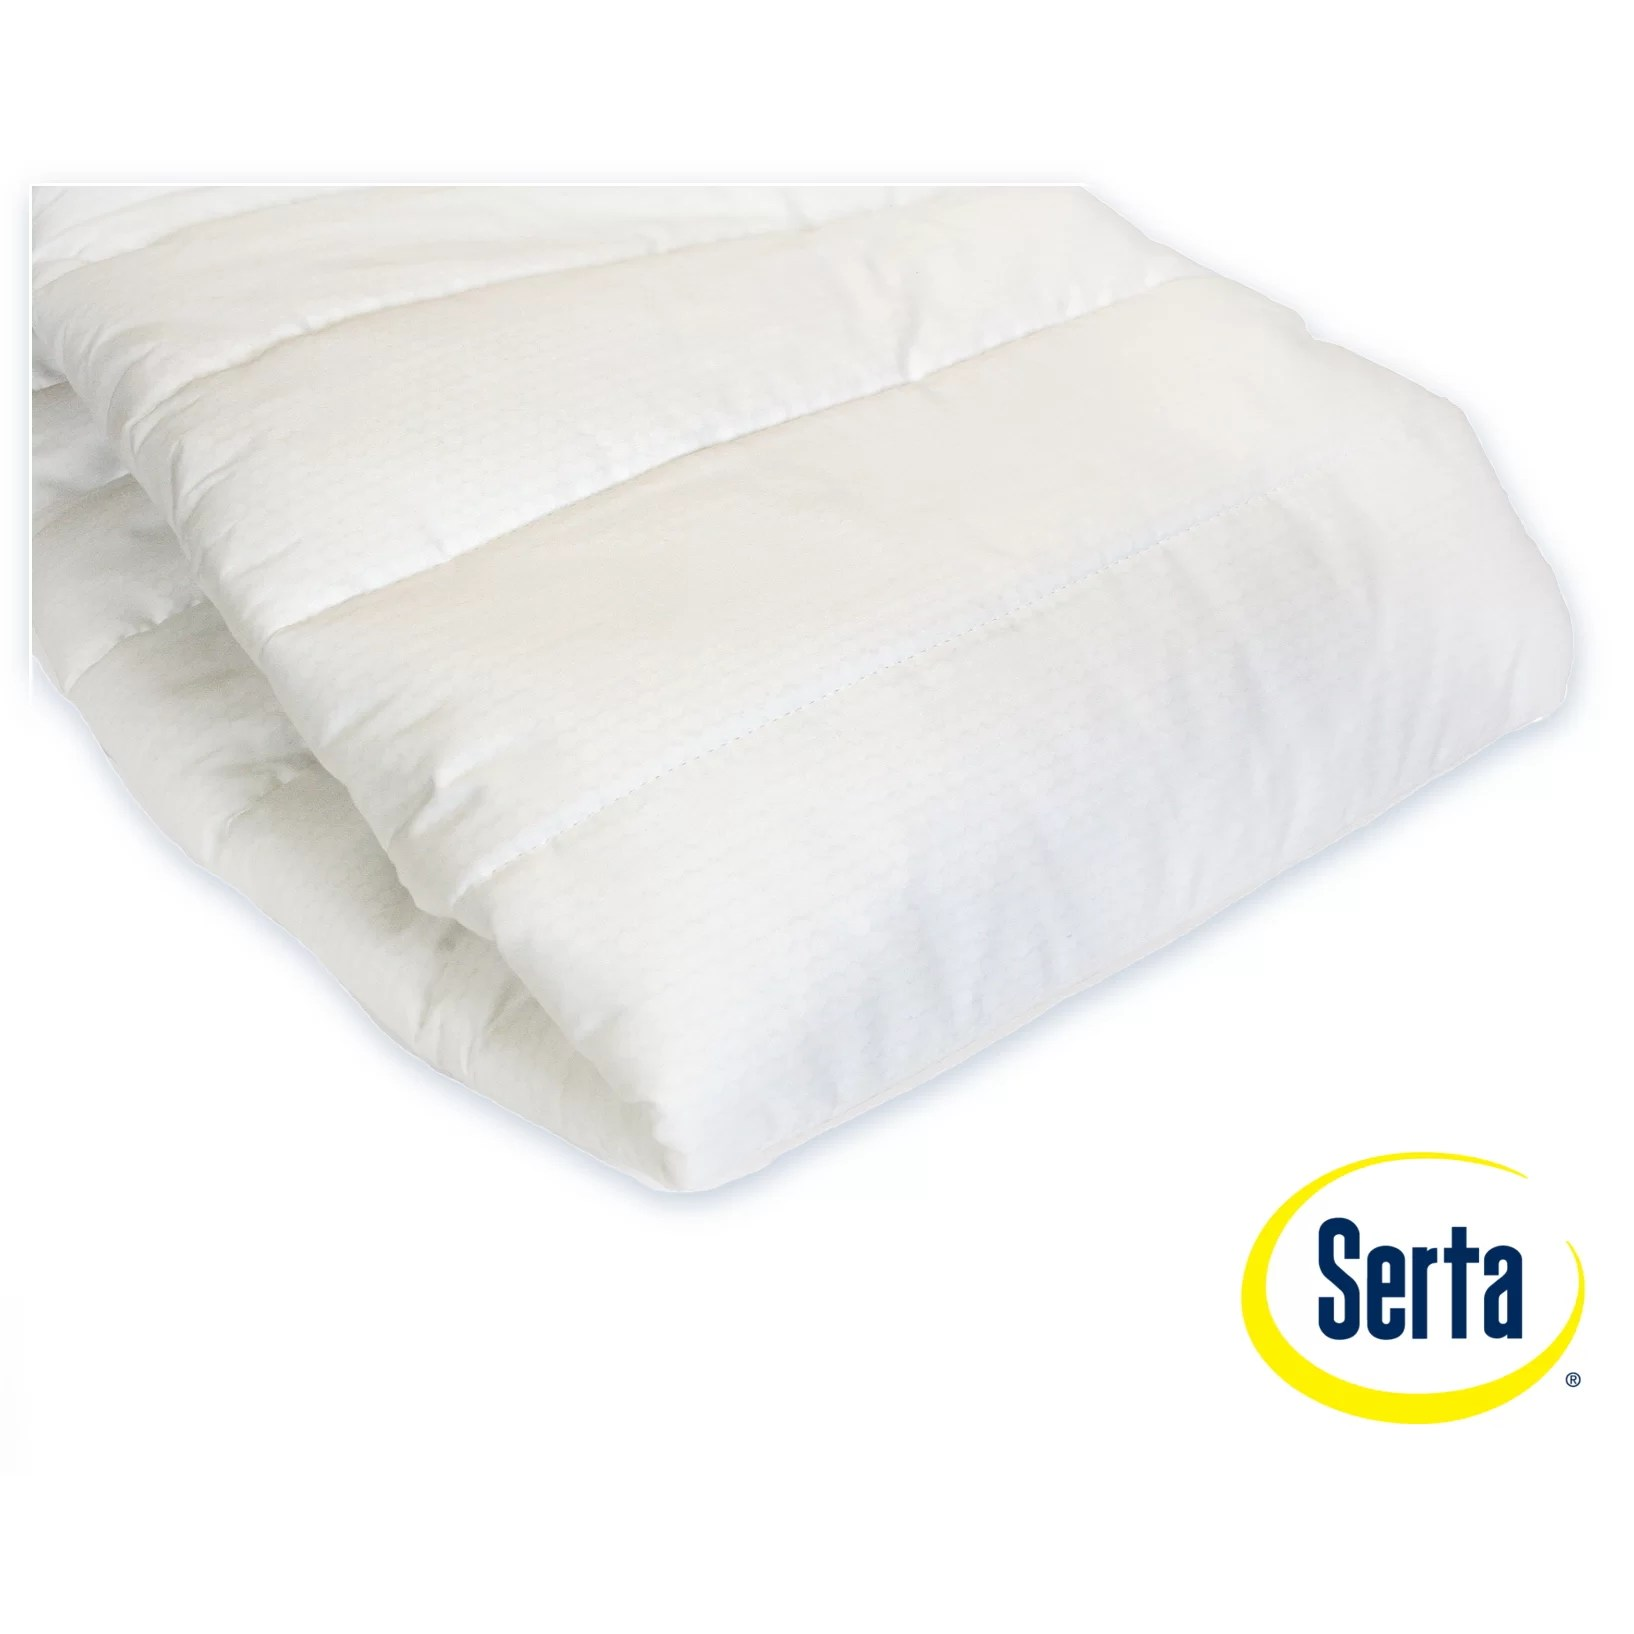 Serta Mattress Uk Mattress Toppers Serta Mattress Toppers